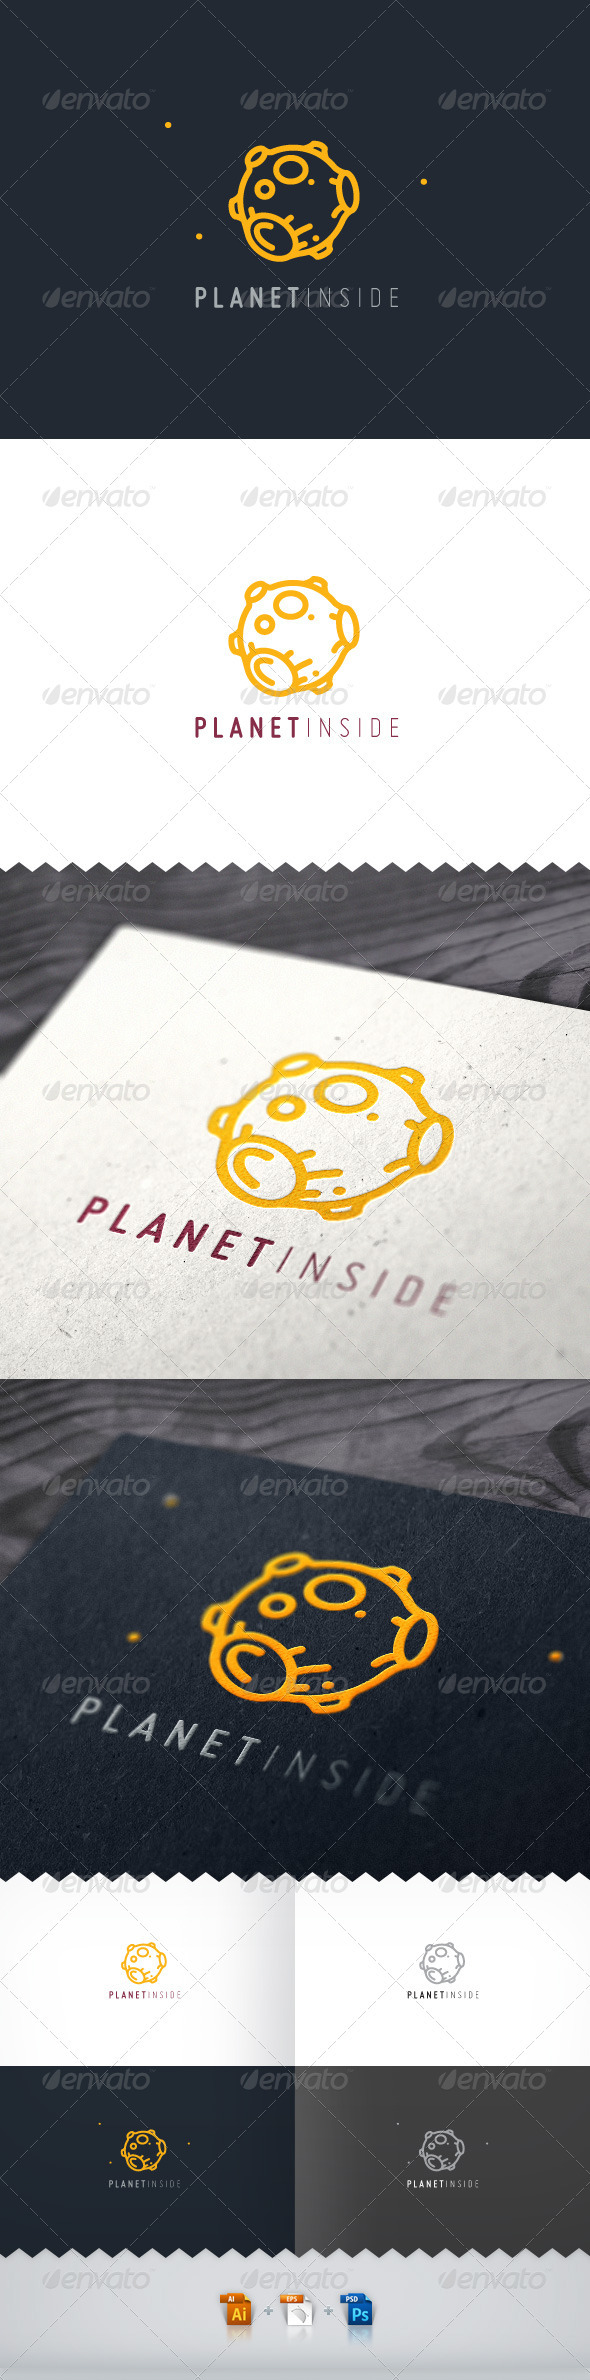 Planet Inside Logo - Objects Logo Templates